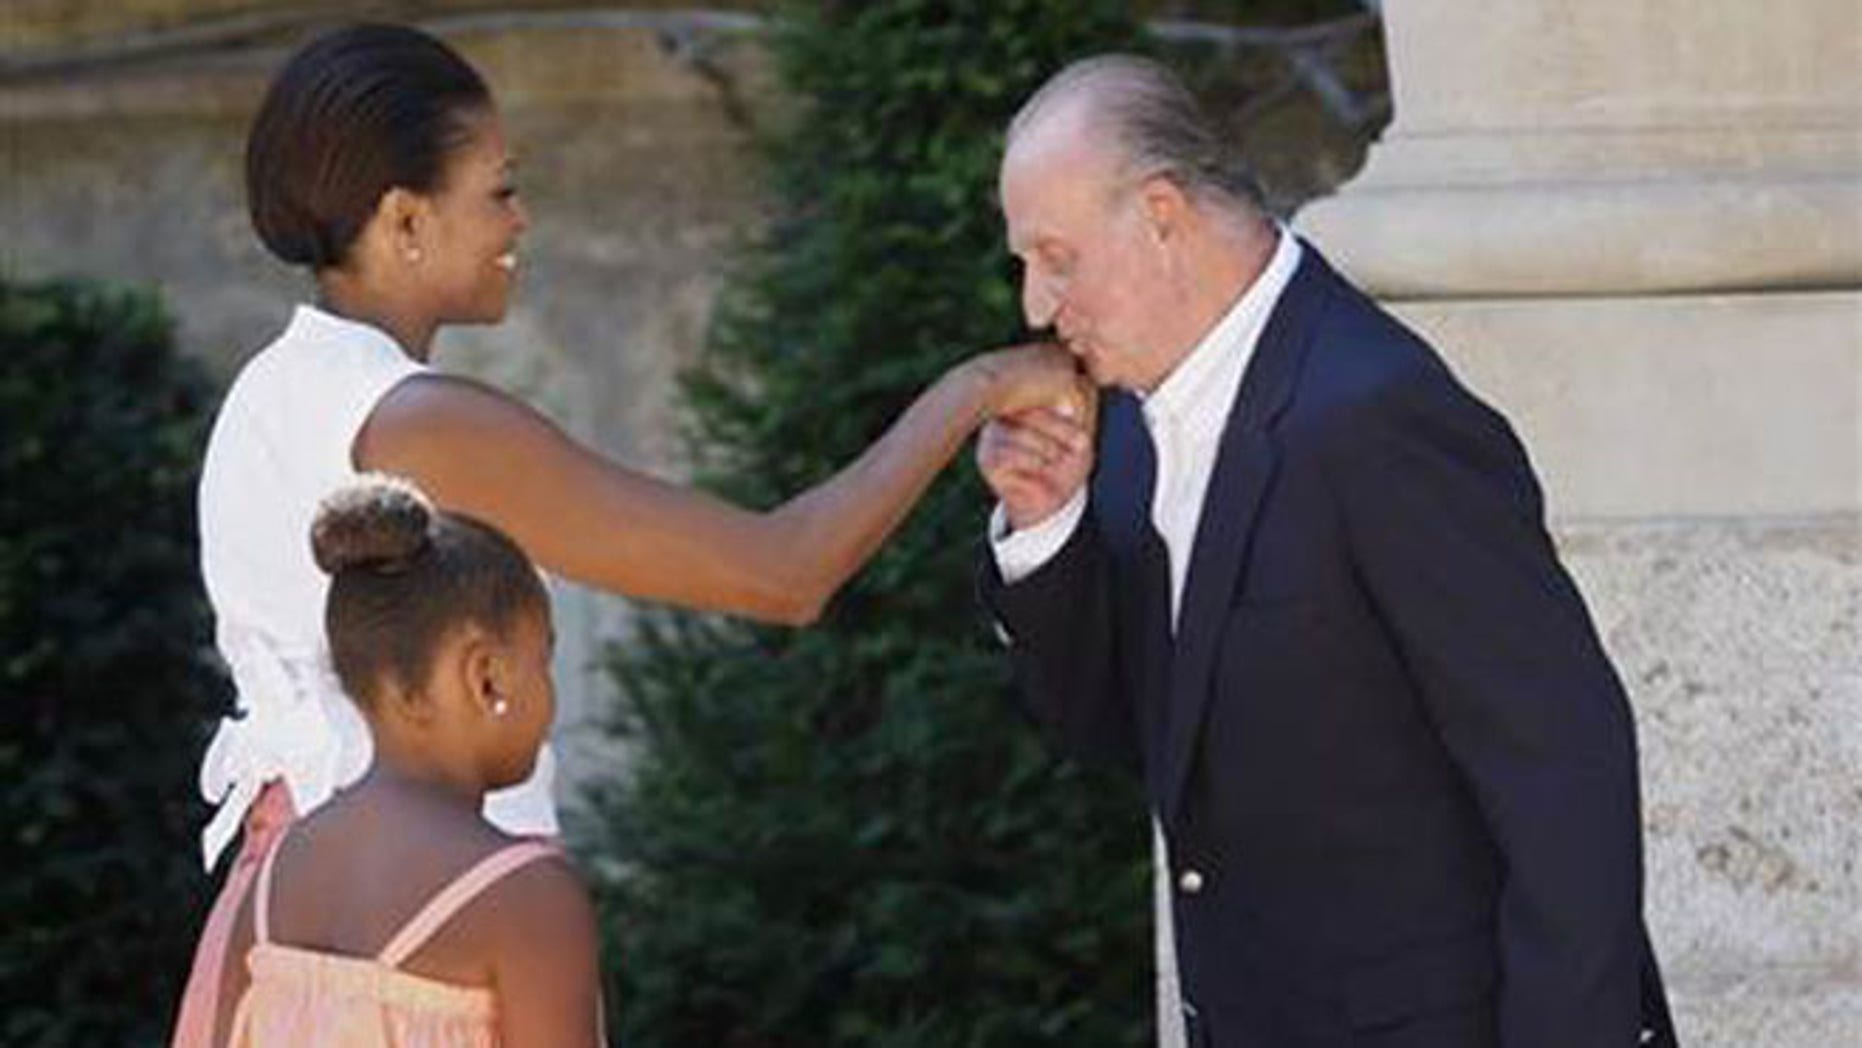 Aug. 8, 2010: First lady Michelle Obama greets Spain's King Juan Carlos, as her daughter Sasha watches.